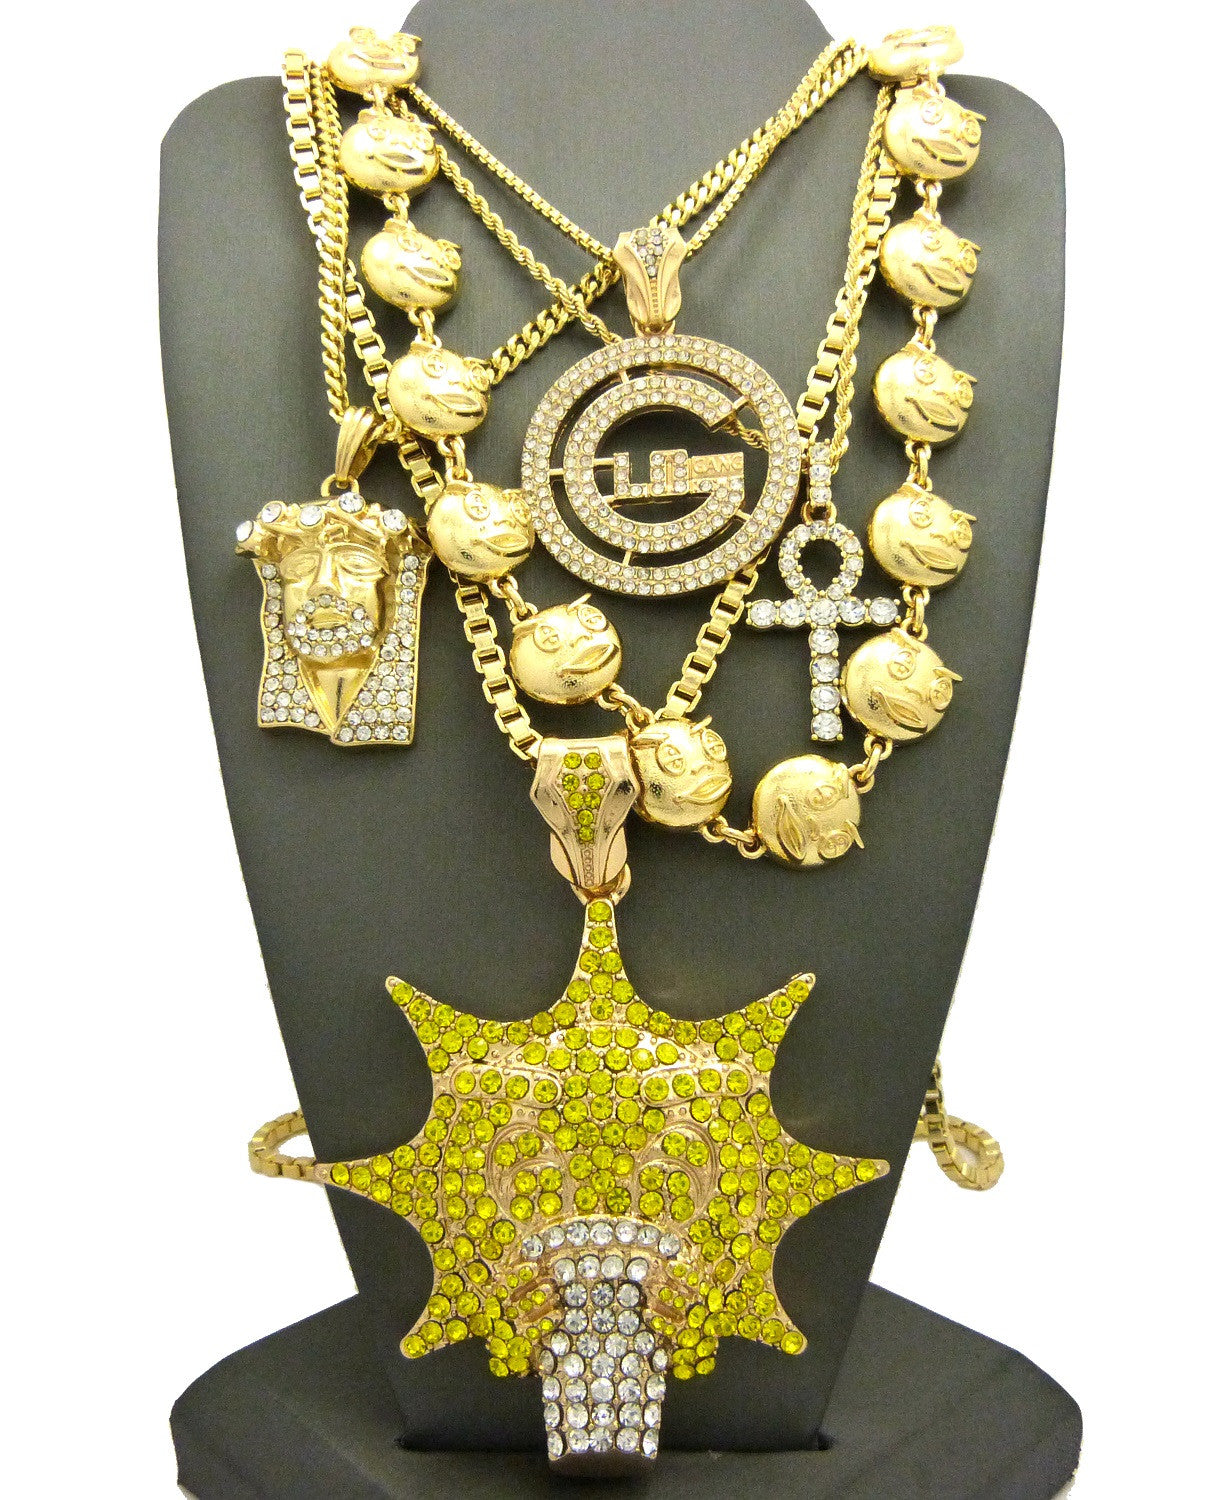 yellow filled chains price s cuban necklace from souq men en arabia saudi chain sa gold mens product